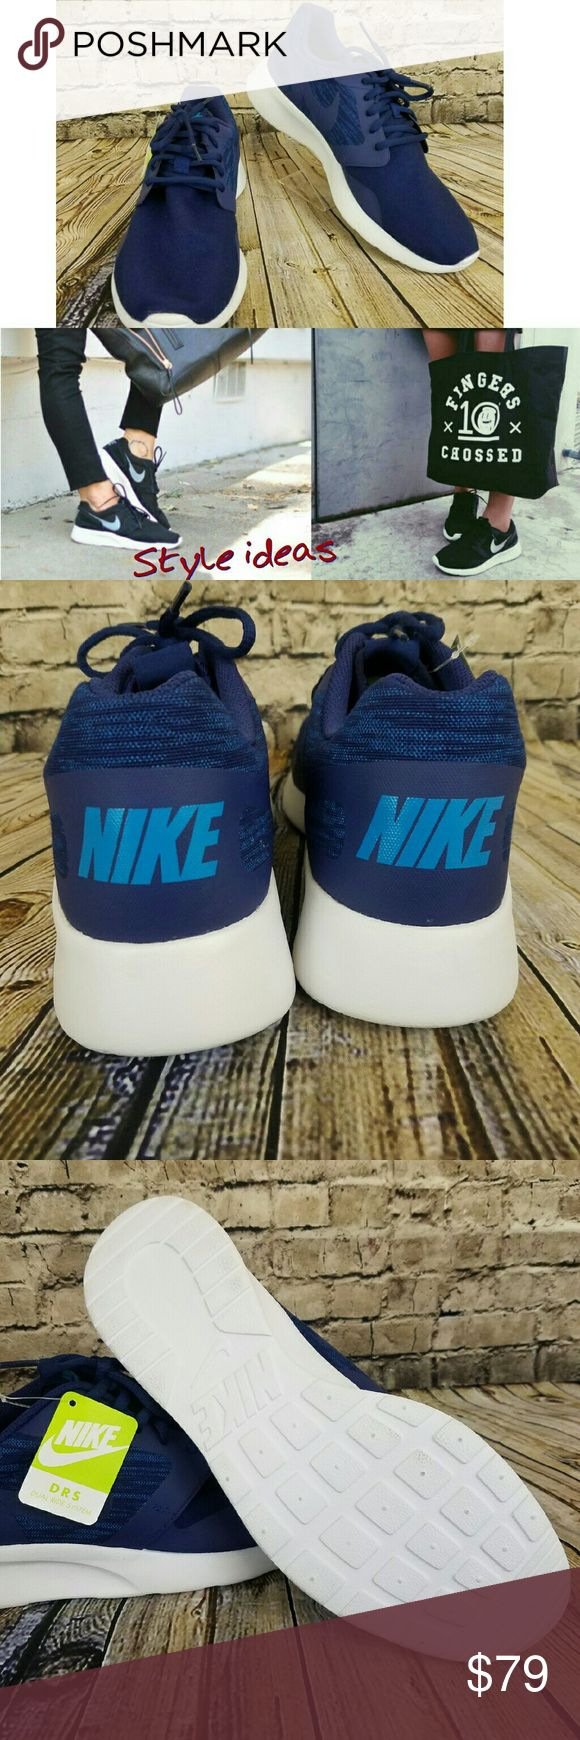 Nike Kaishi Navy Blue Soft Canvas Men's 9.5= women's 11 Brand new, never been worn, tags on  Influenced by the Nike Roshe One, the Nike Kaishi Run Men's Shoe is designed with a lightweight mesh and suede upper for breathable comfort and streamlined style. An IU unitsole is durable enough to double as an outsole for minimal bulk. Nike Shoes Athletic Shoes